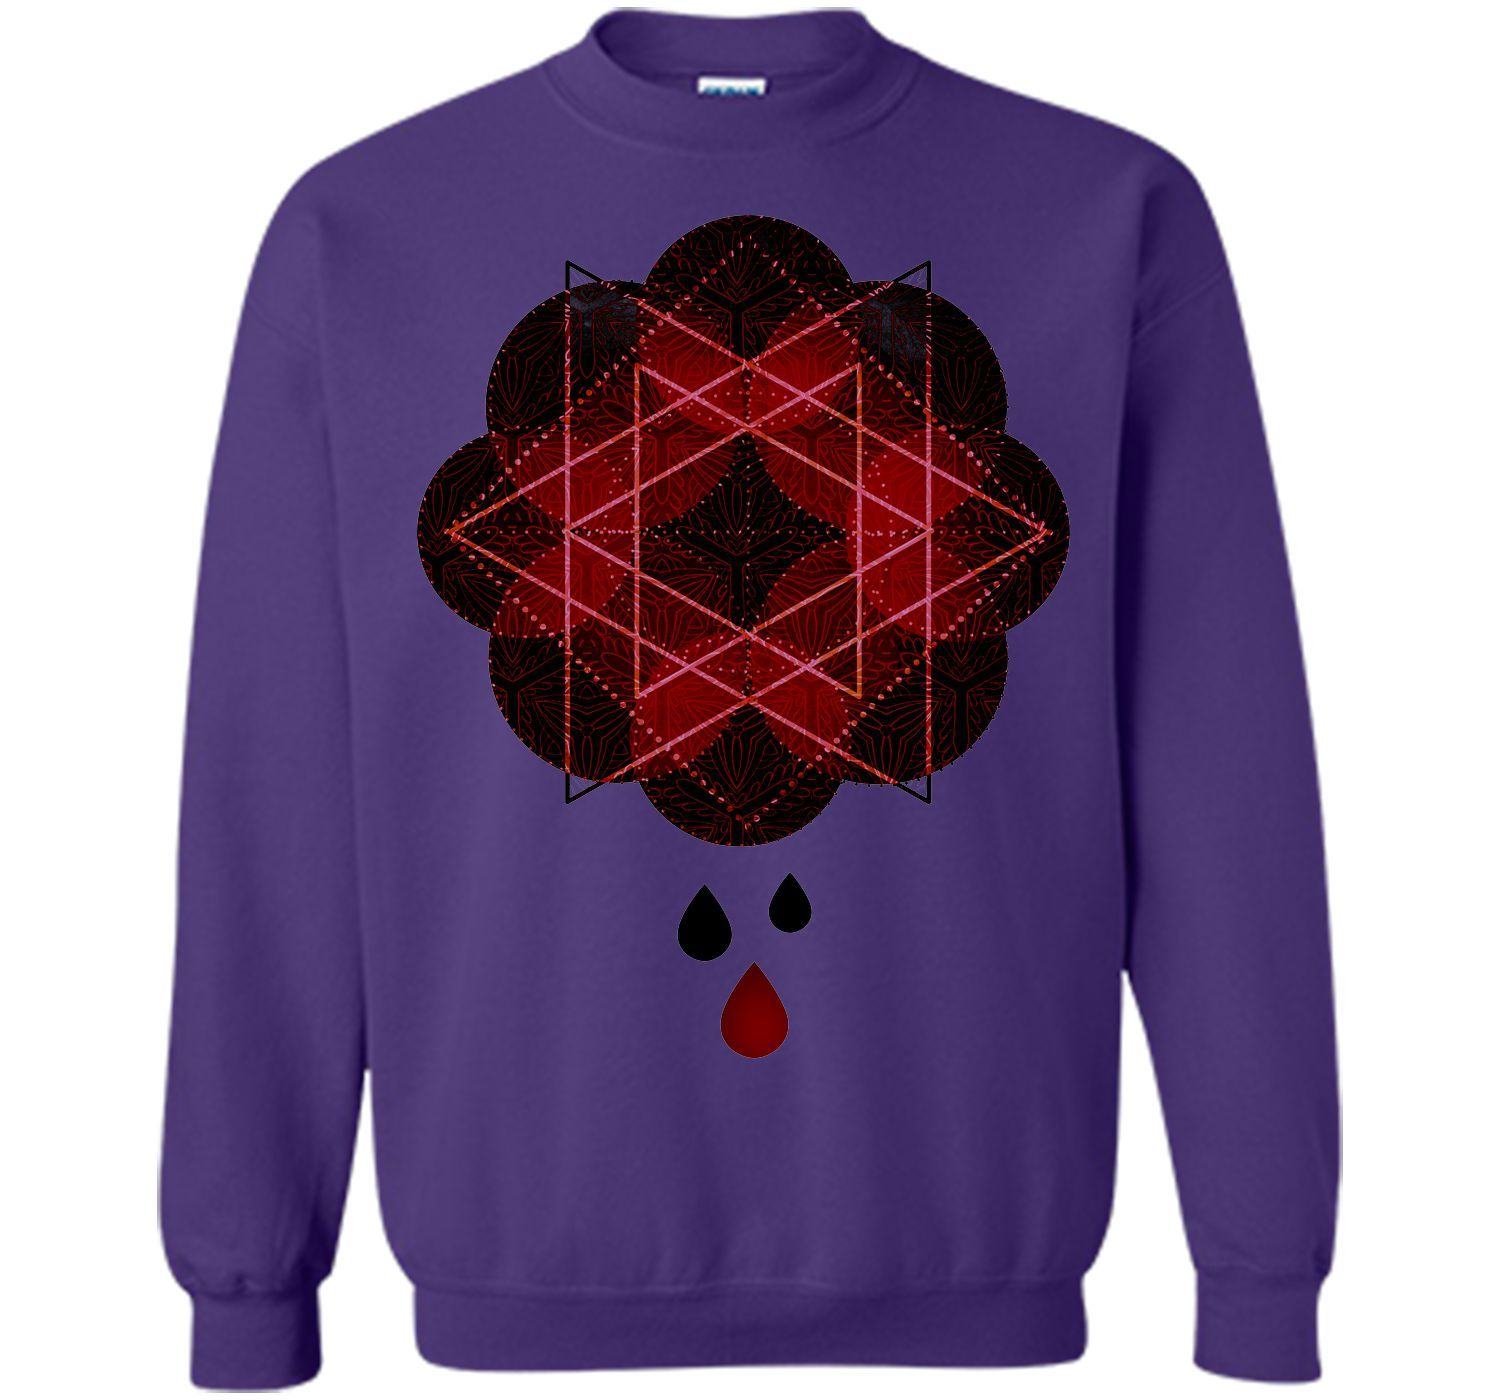 Adorable lotus flower demons 2017 t shirt products pinterest adorable lotus flower demons 2017 t shirt izmirmasajfo Images